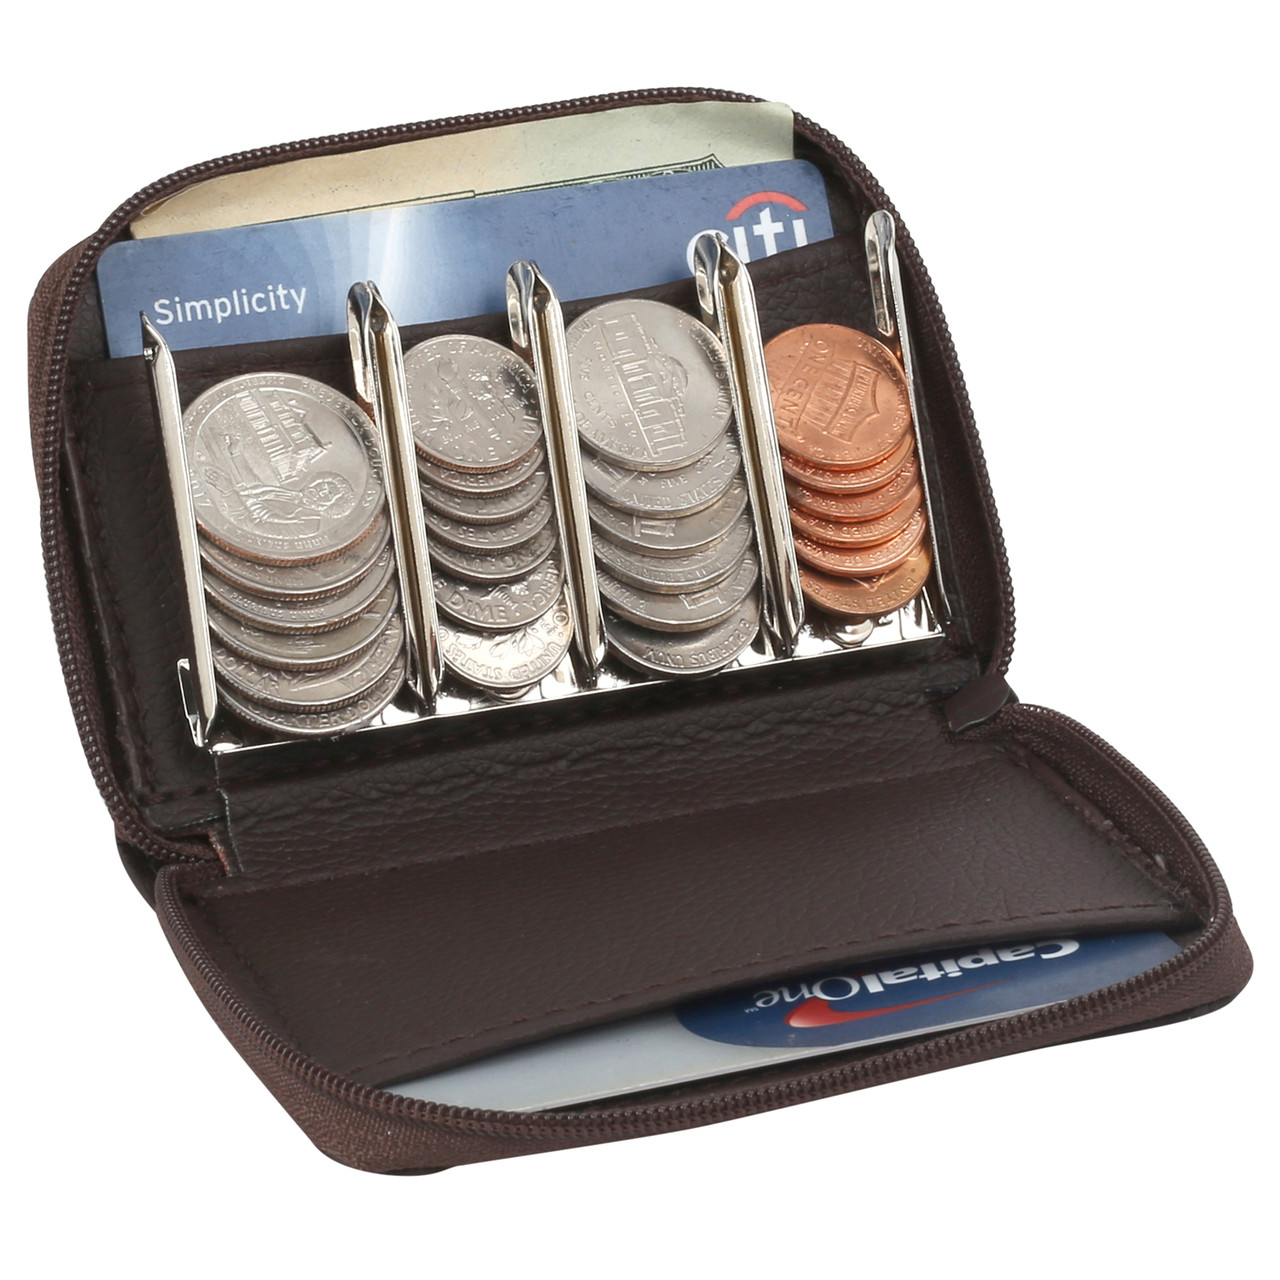 Coin Purse Wallet With Coin Sorter - My Charity Boxes